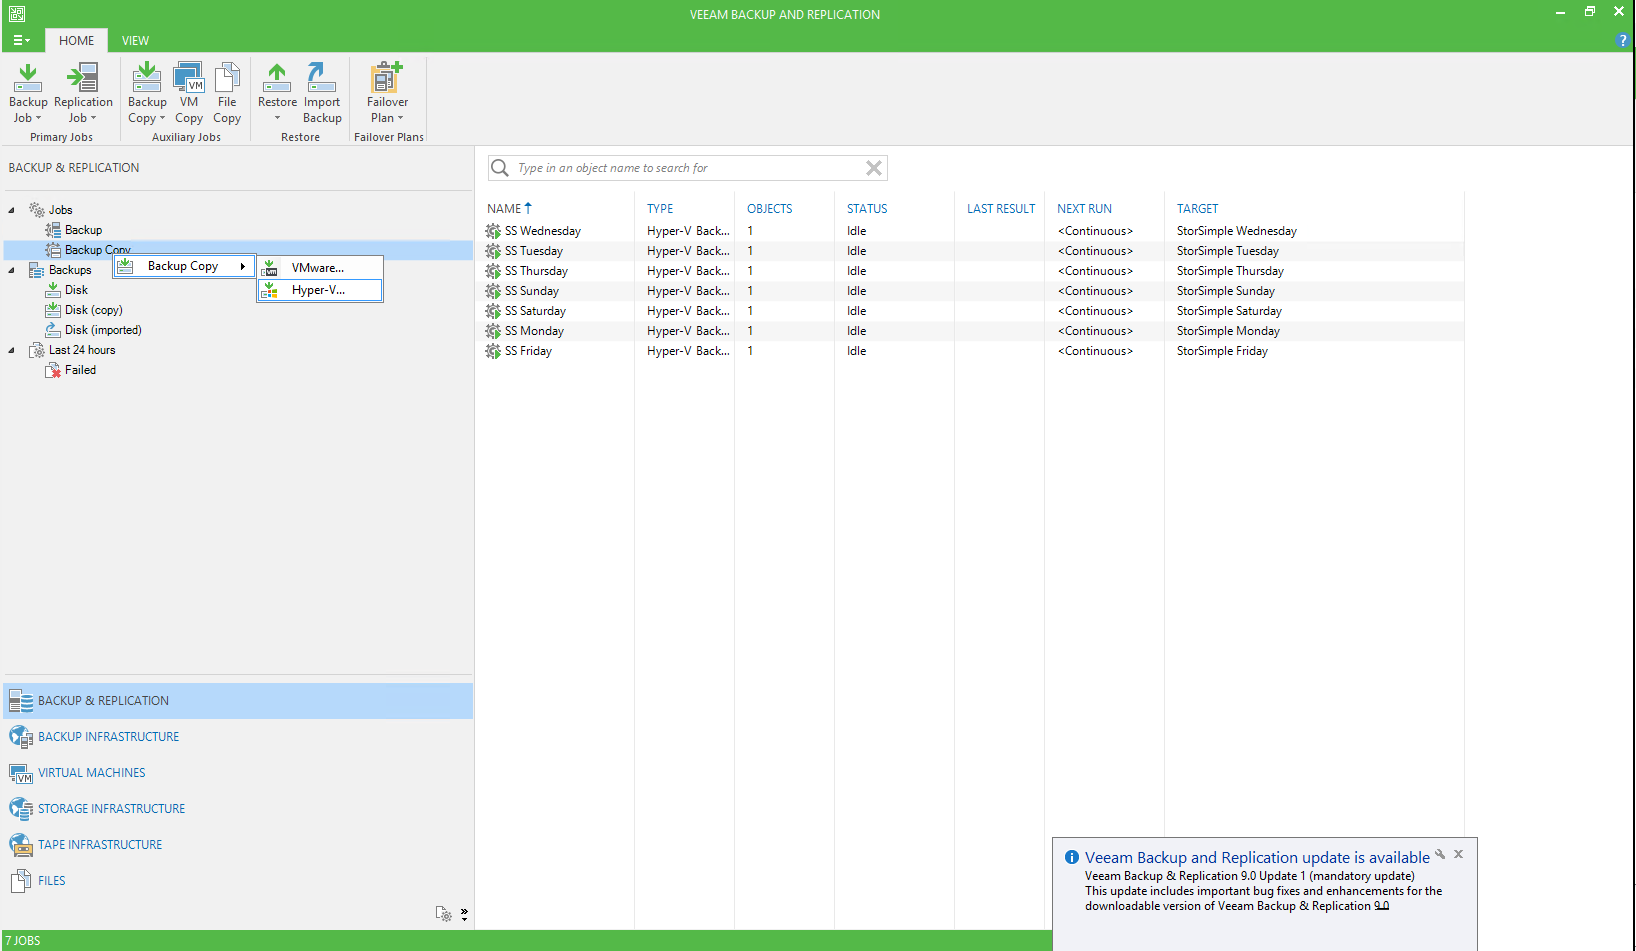 Veeam Management Console, New Backup Copy Job Page